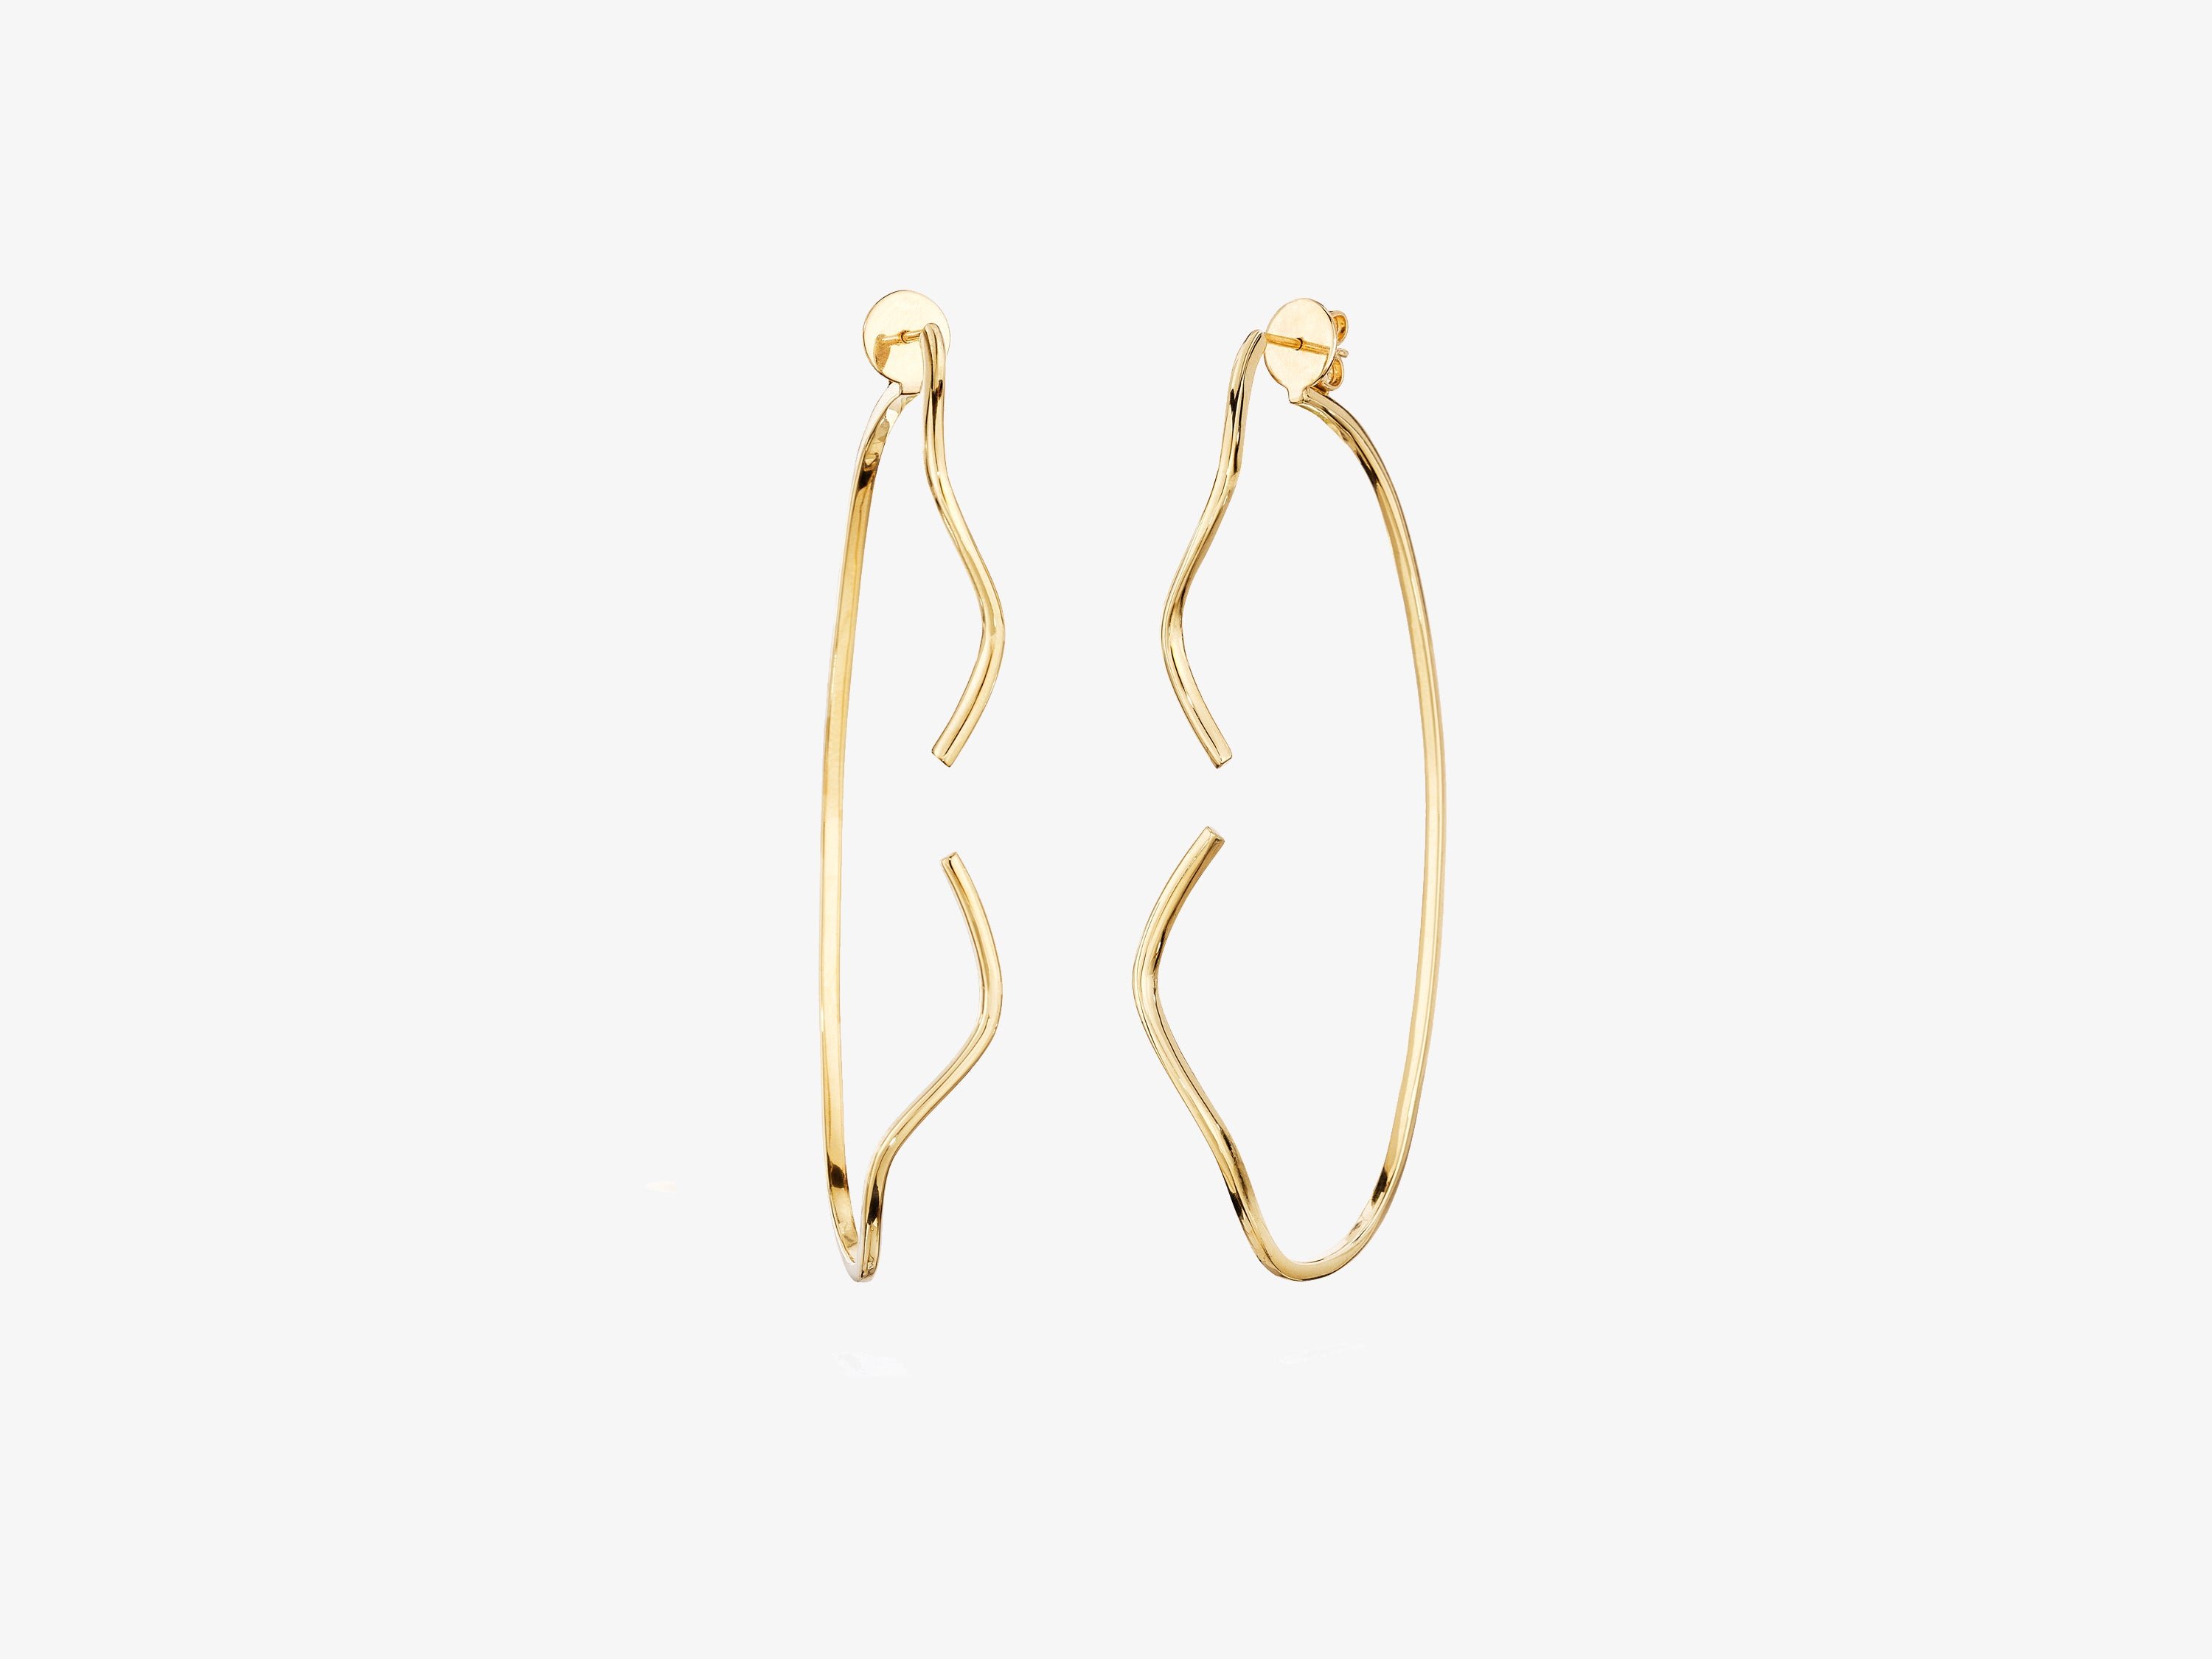 Sans Pave Curvy Two Part Earrings